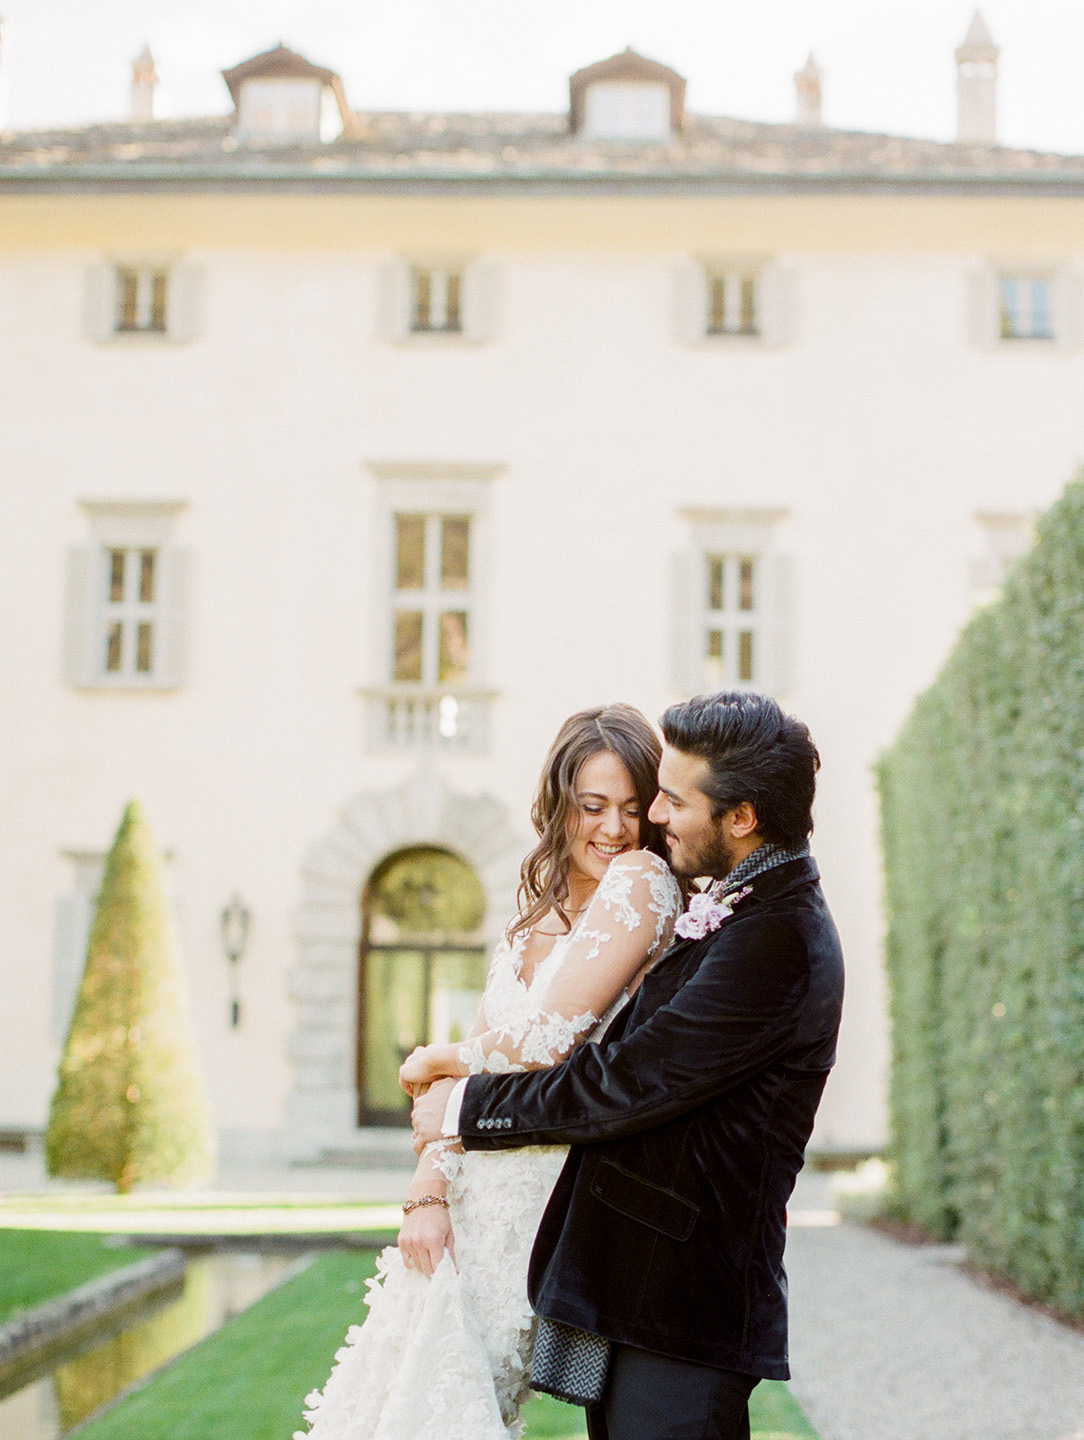 villa balbiano elopement in lake como bride and groom embrace